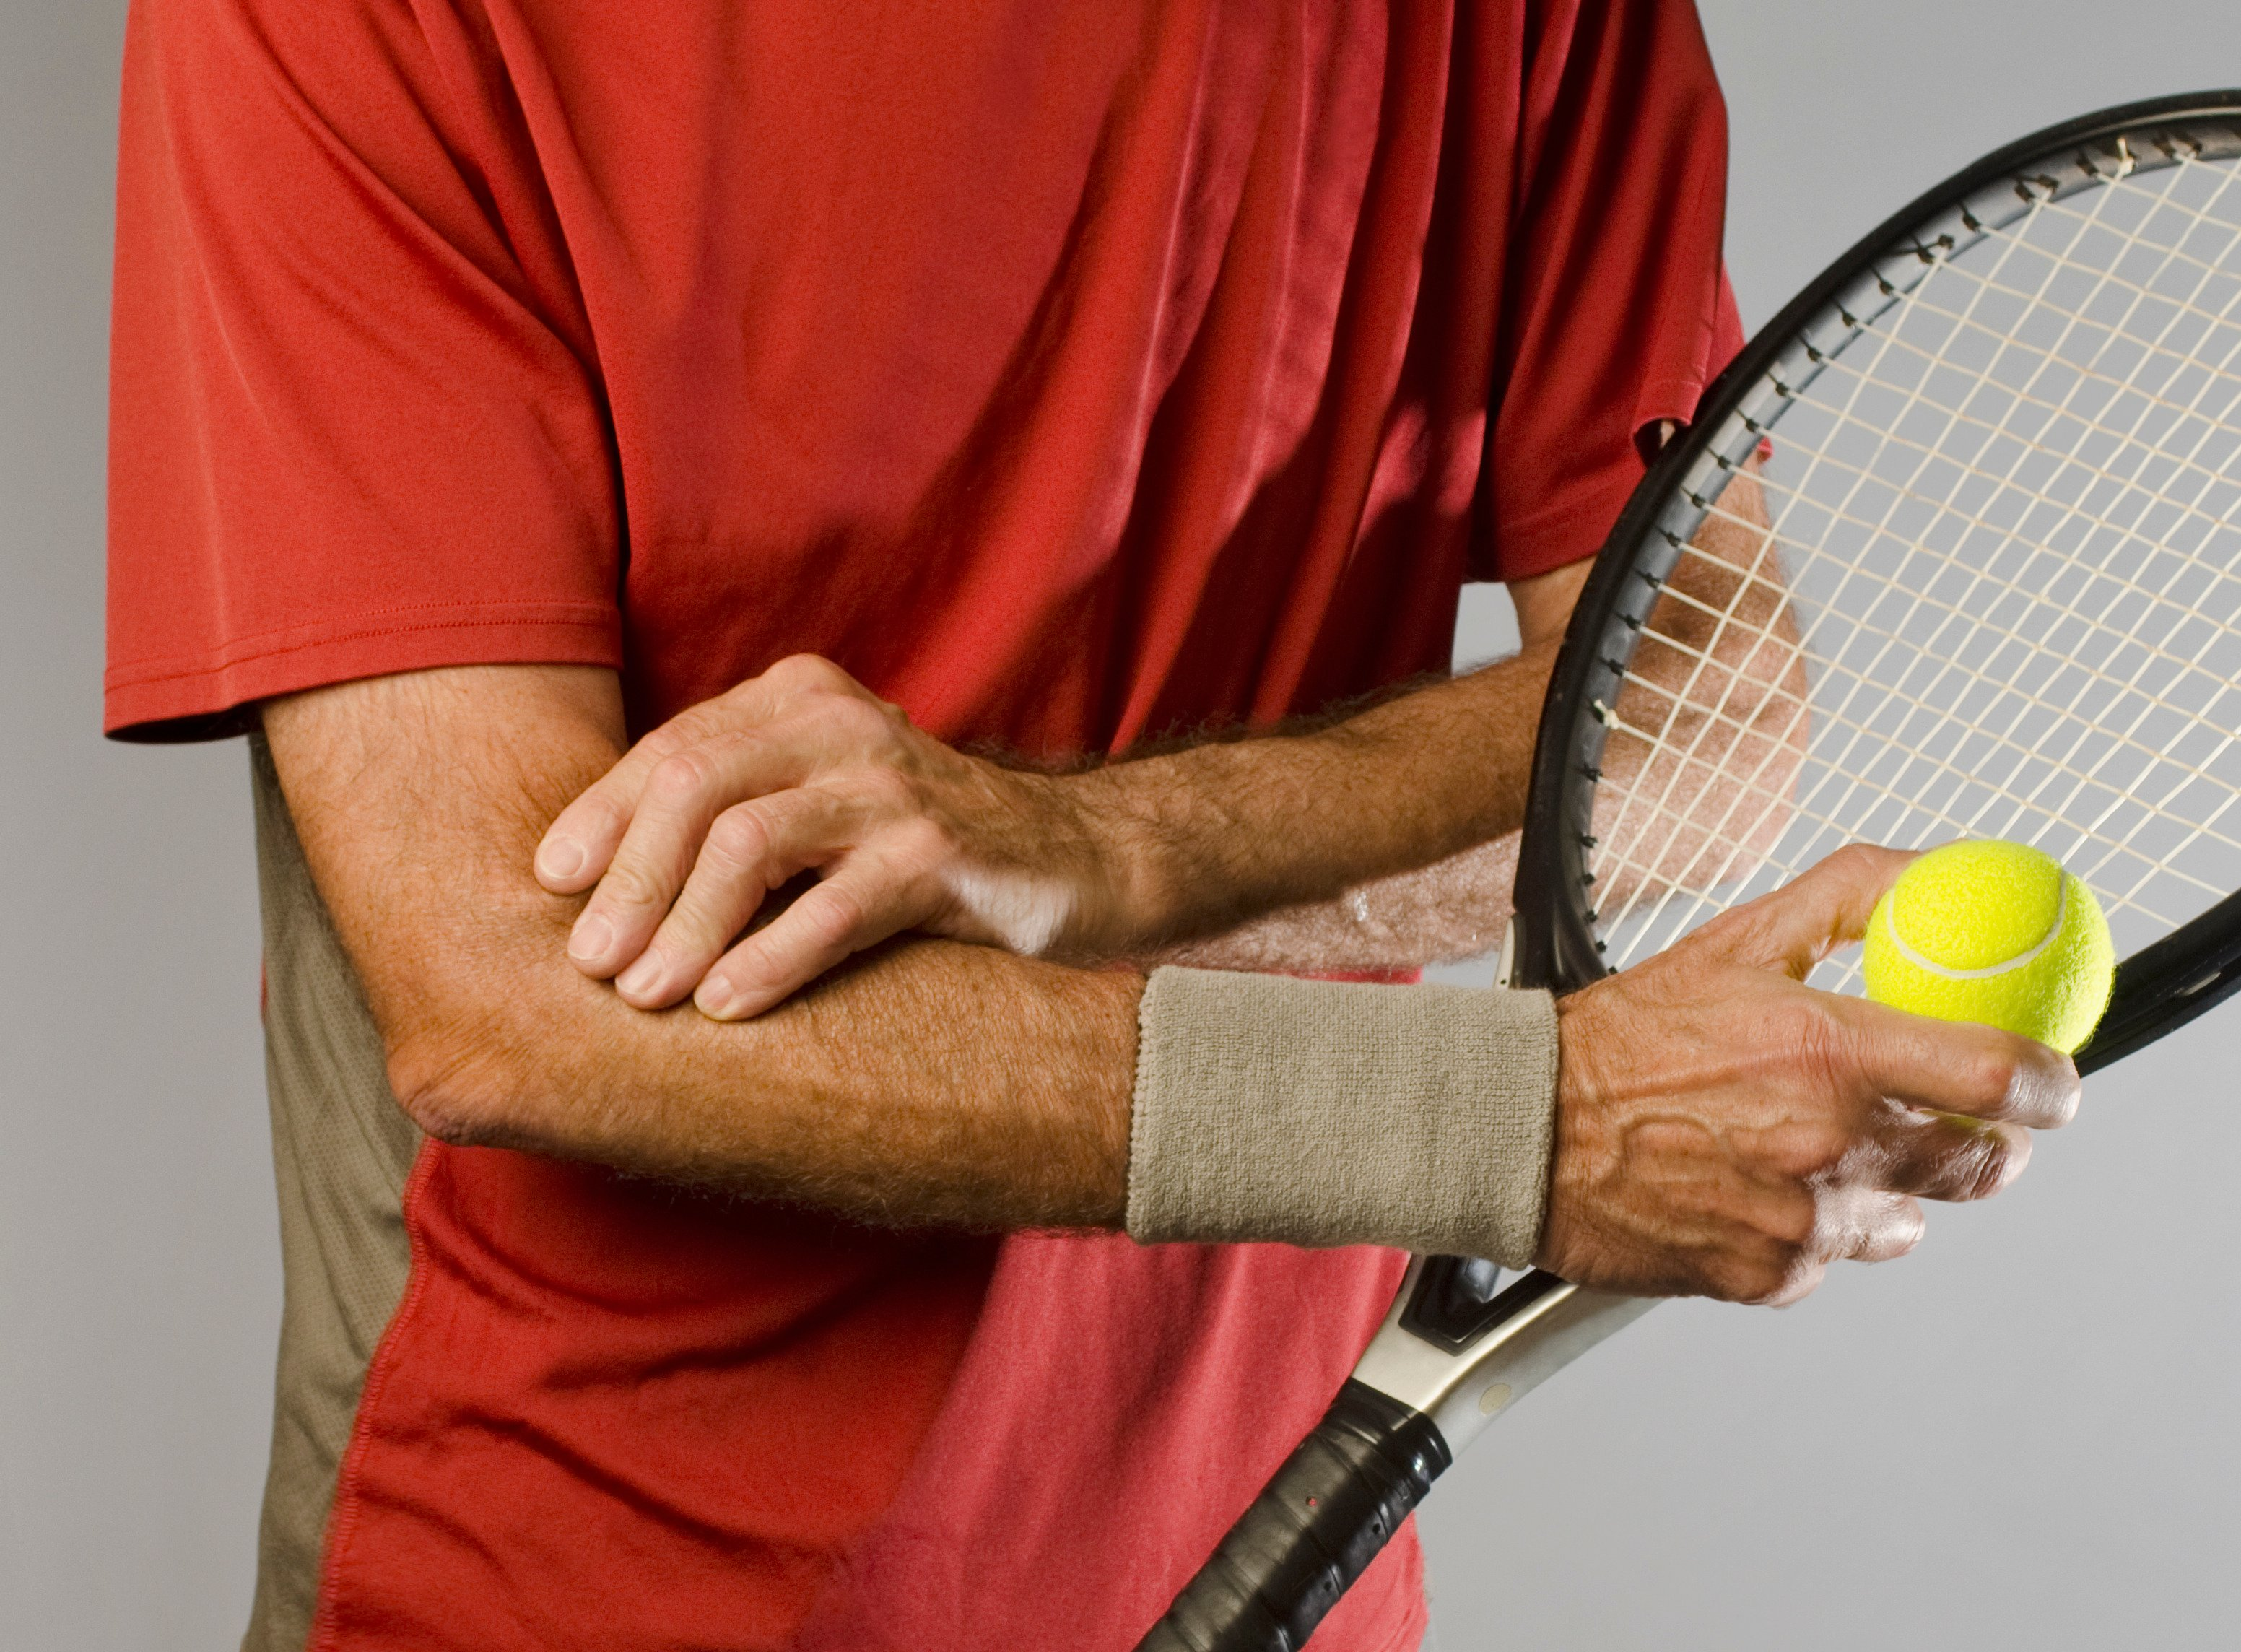 Commin Sports Injuries: Tennis Elbow